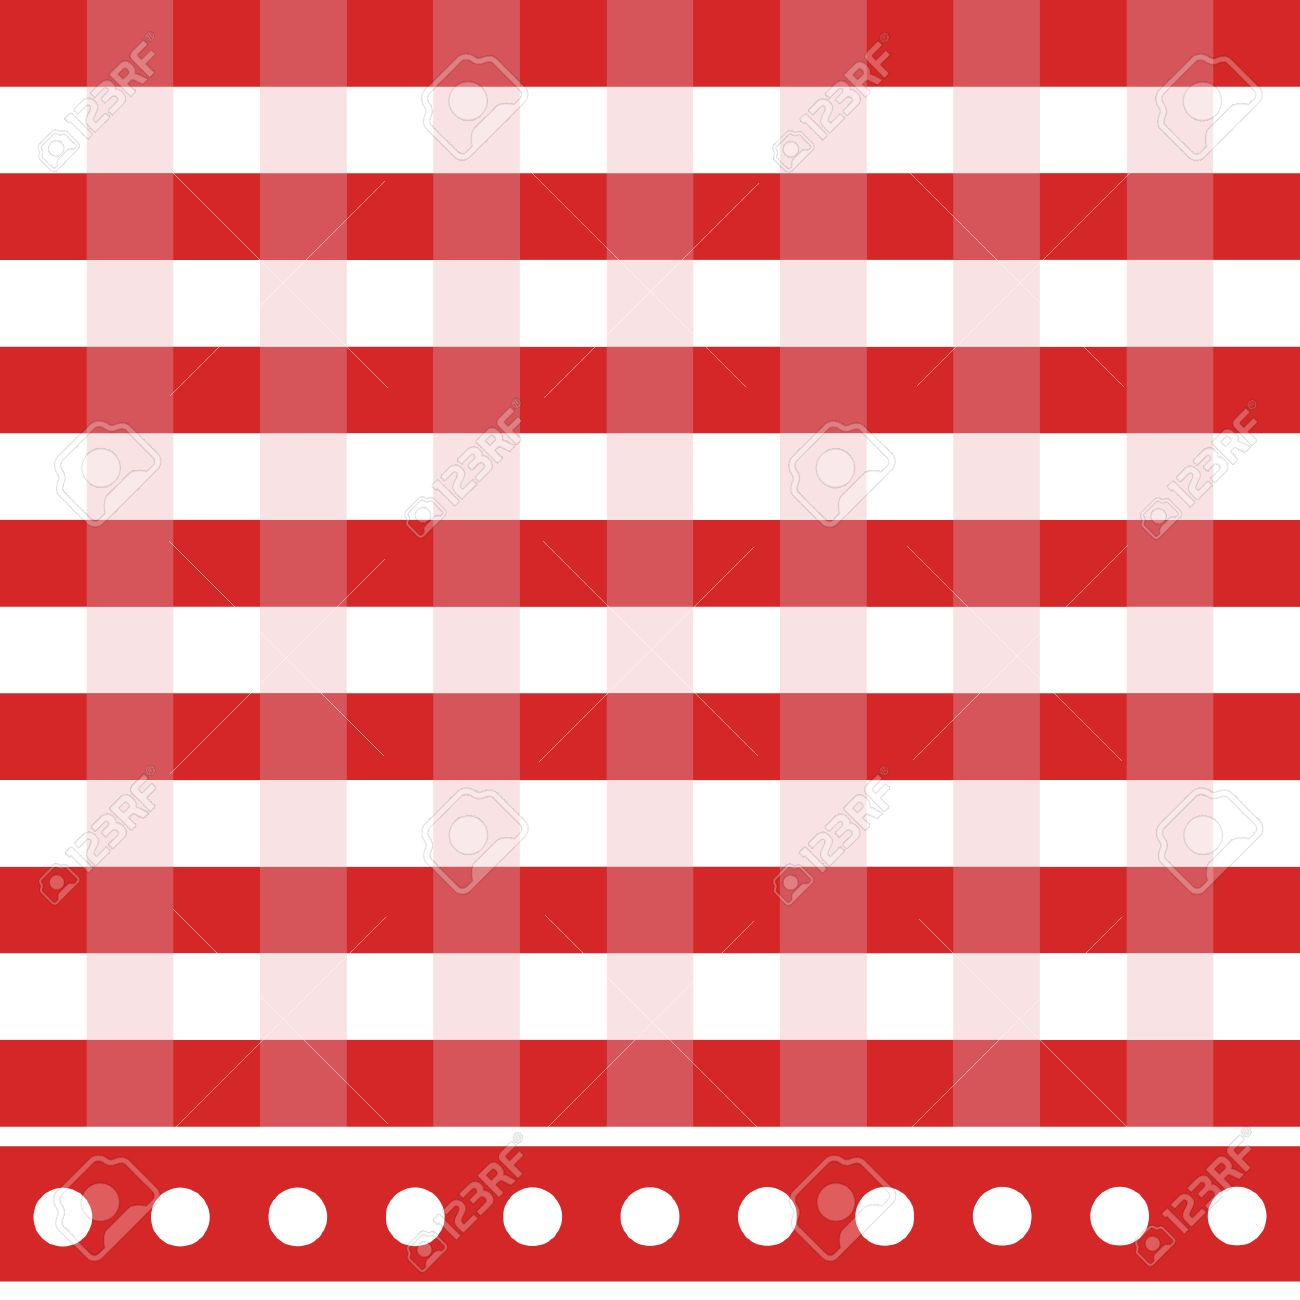 Red And White Checkered Tablecloth Vector Illustration. Picnic Table Cloth  Stock Vector   44097129